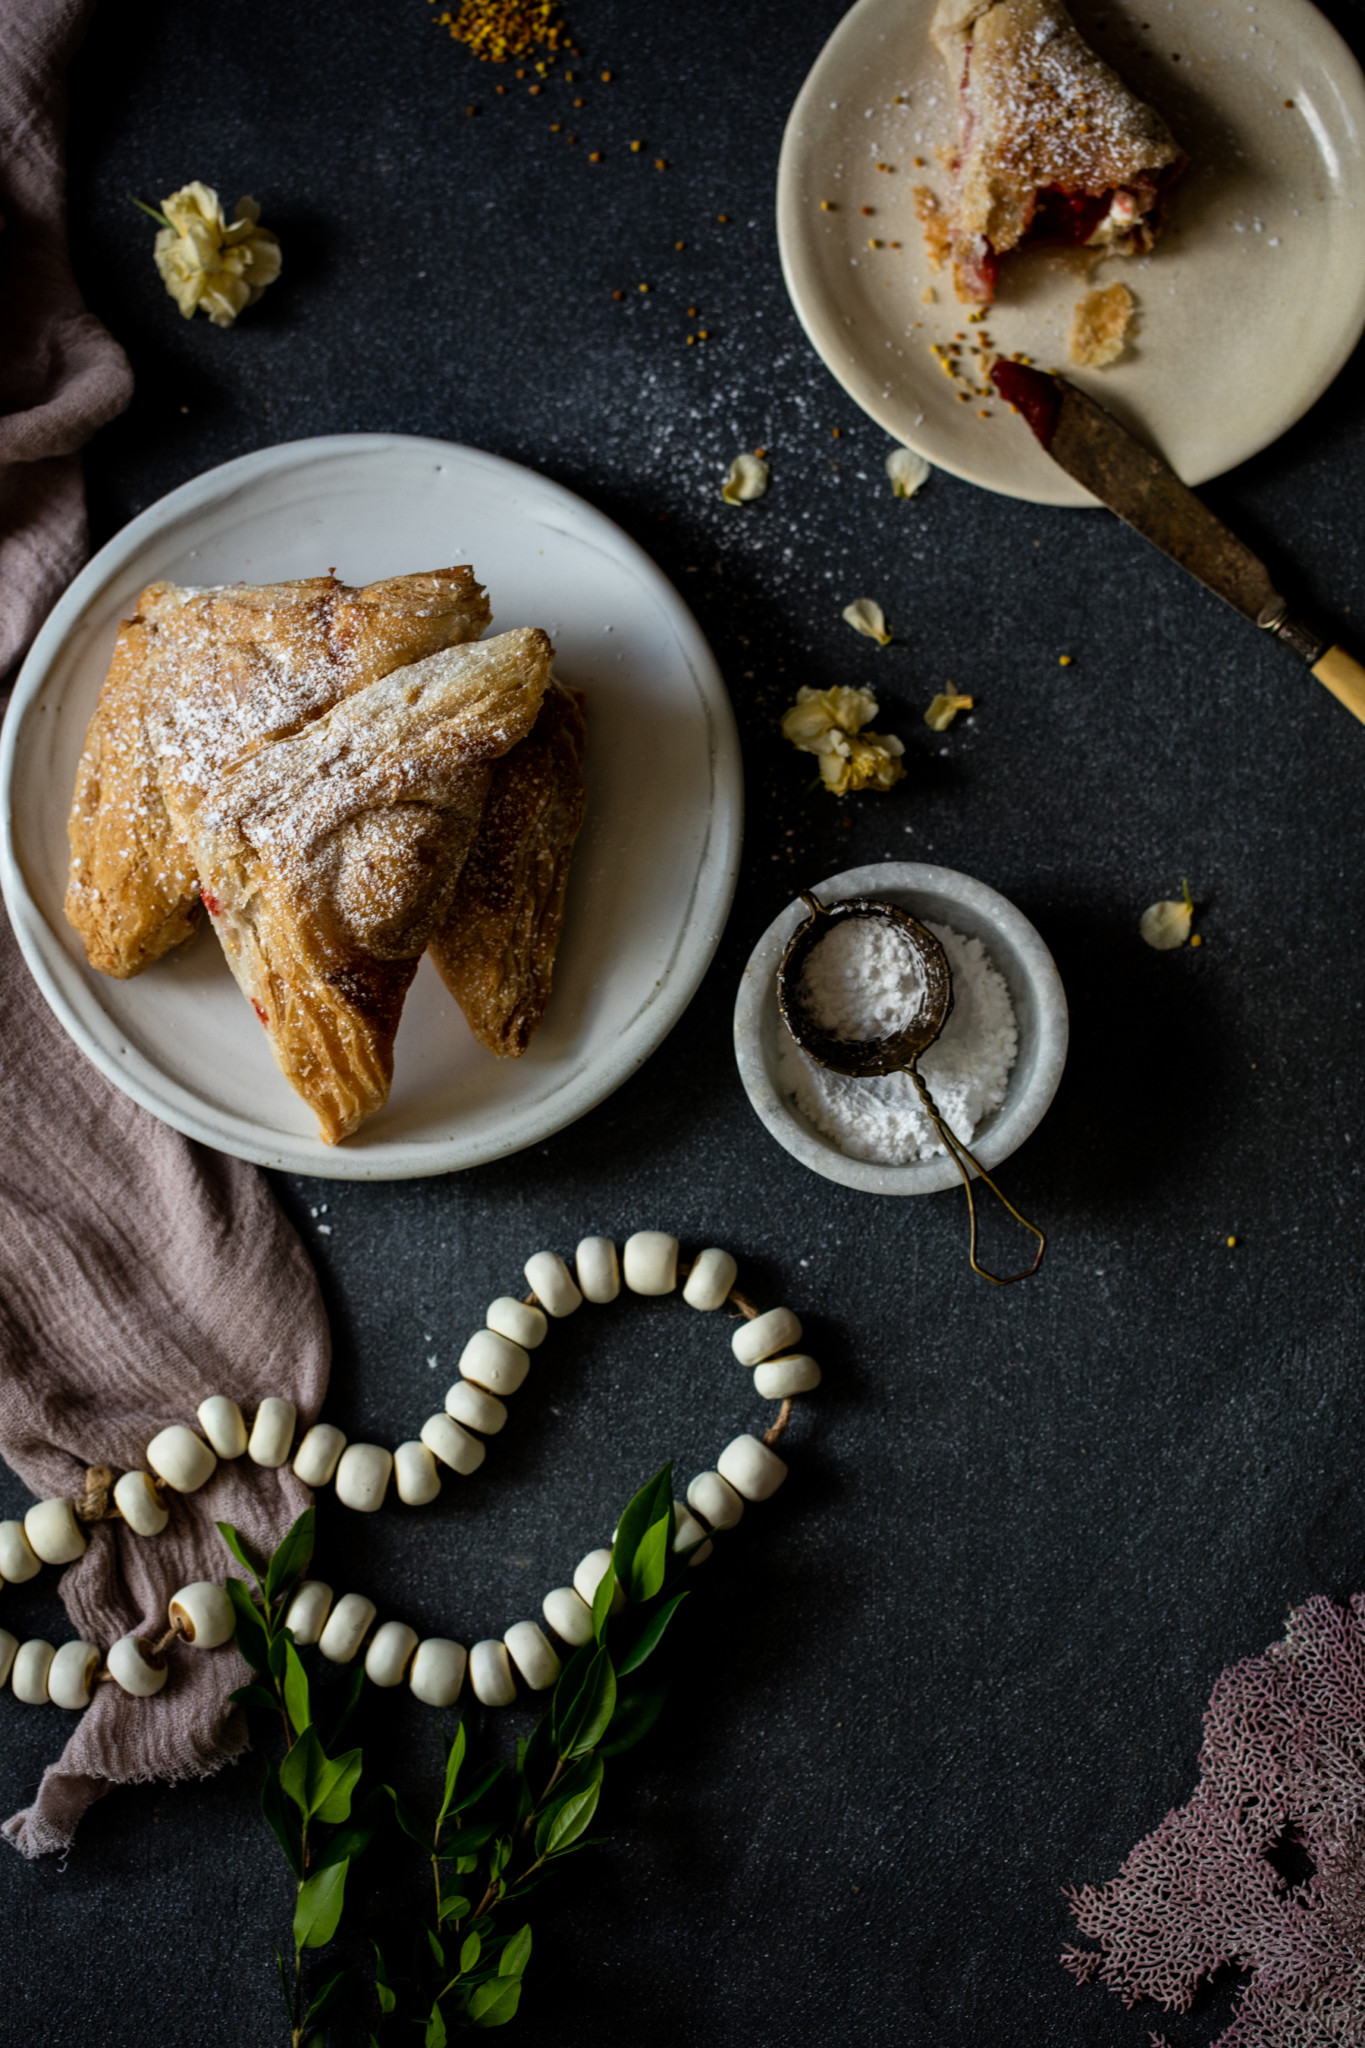 Food styling guava pastries